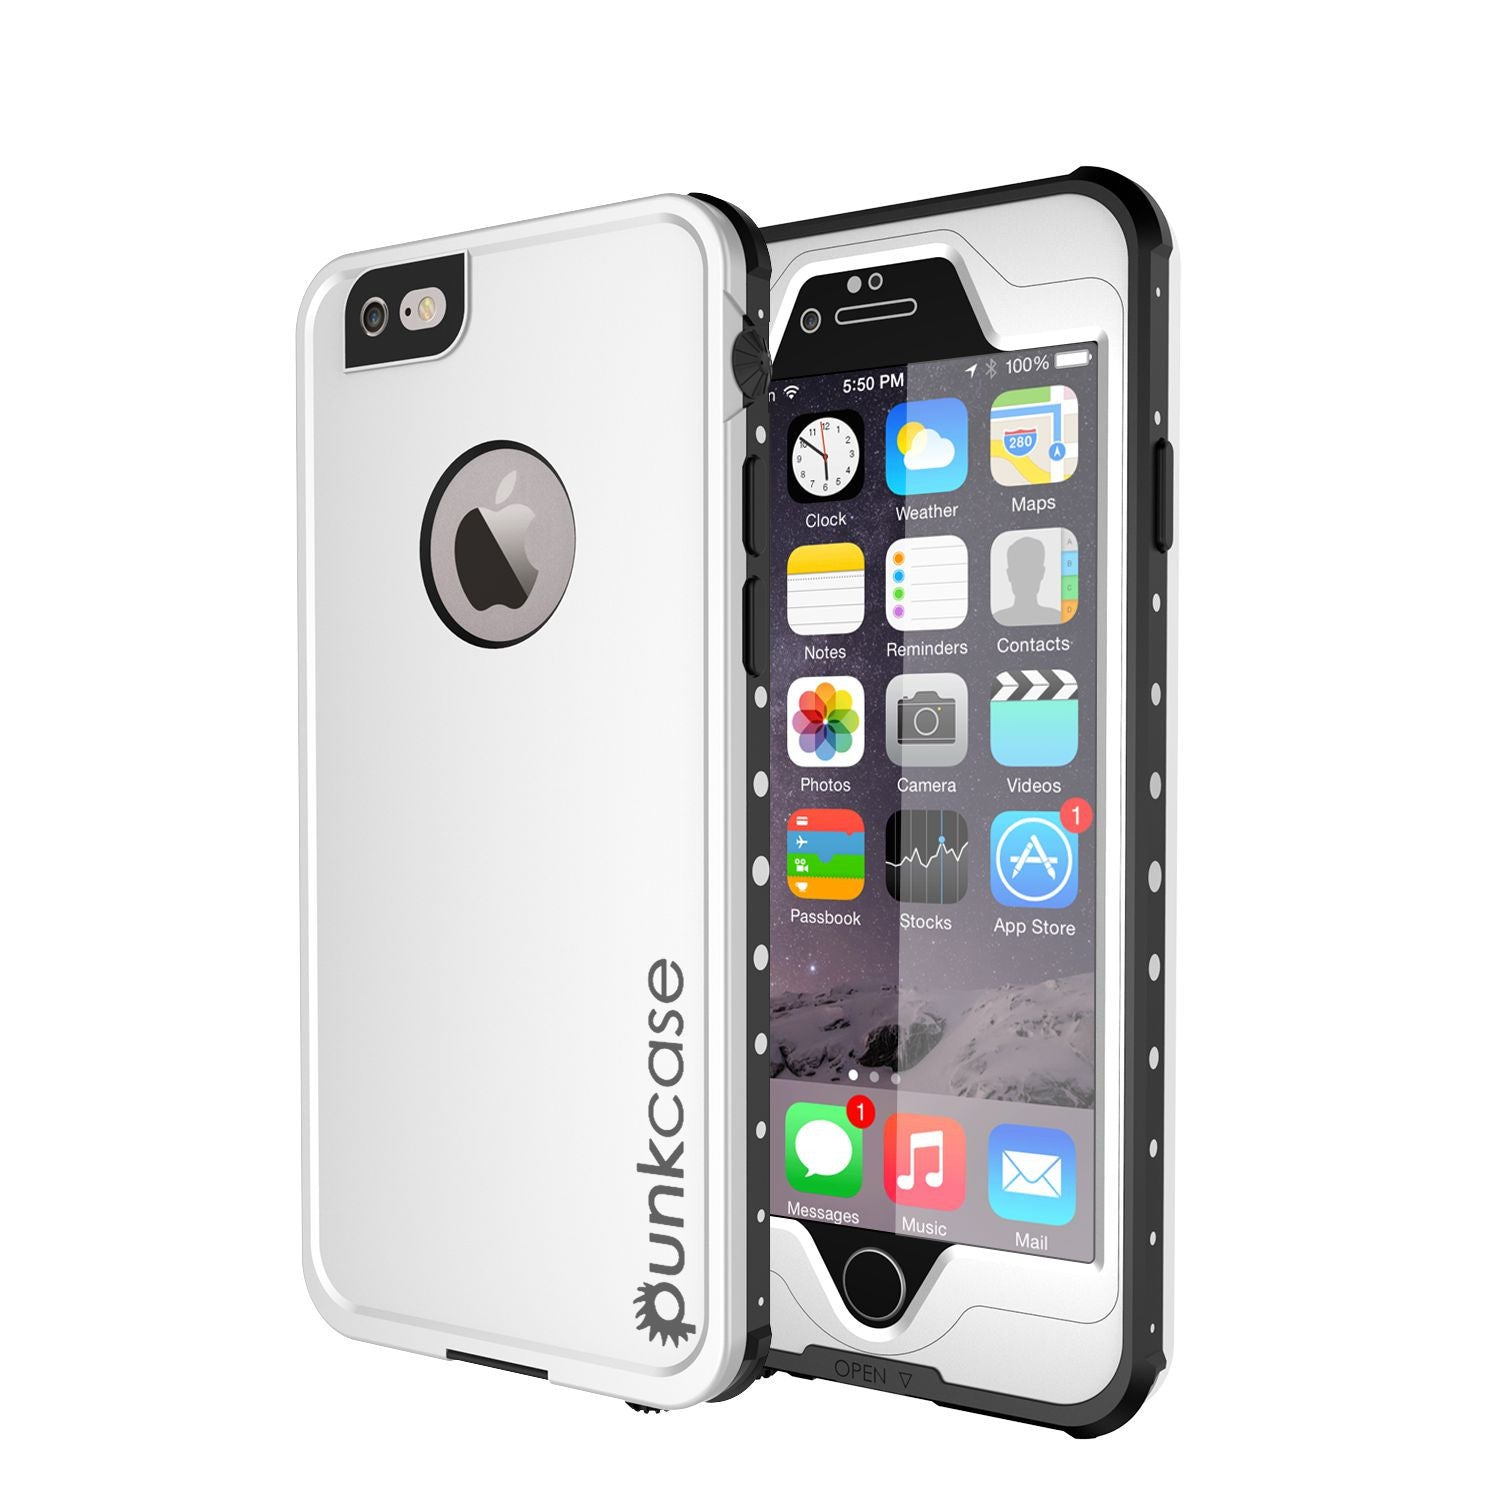 iPhone 6S+/6+ Plus Waterproof Case, PUNKcase StudStar White w/ Attached Screen Protector | Warranty